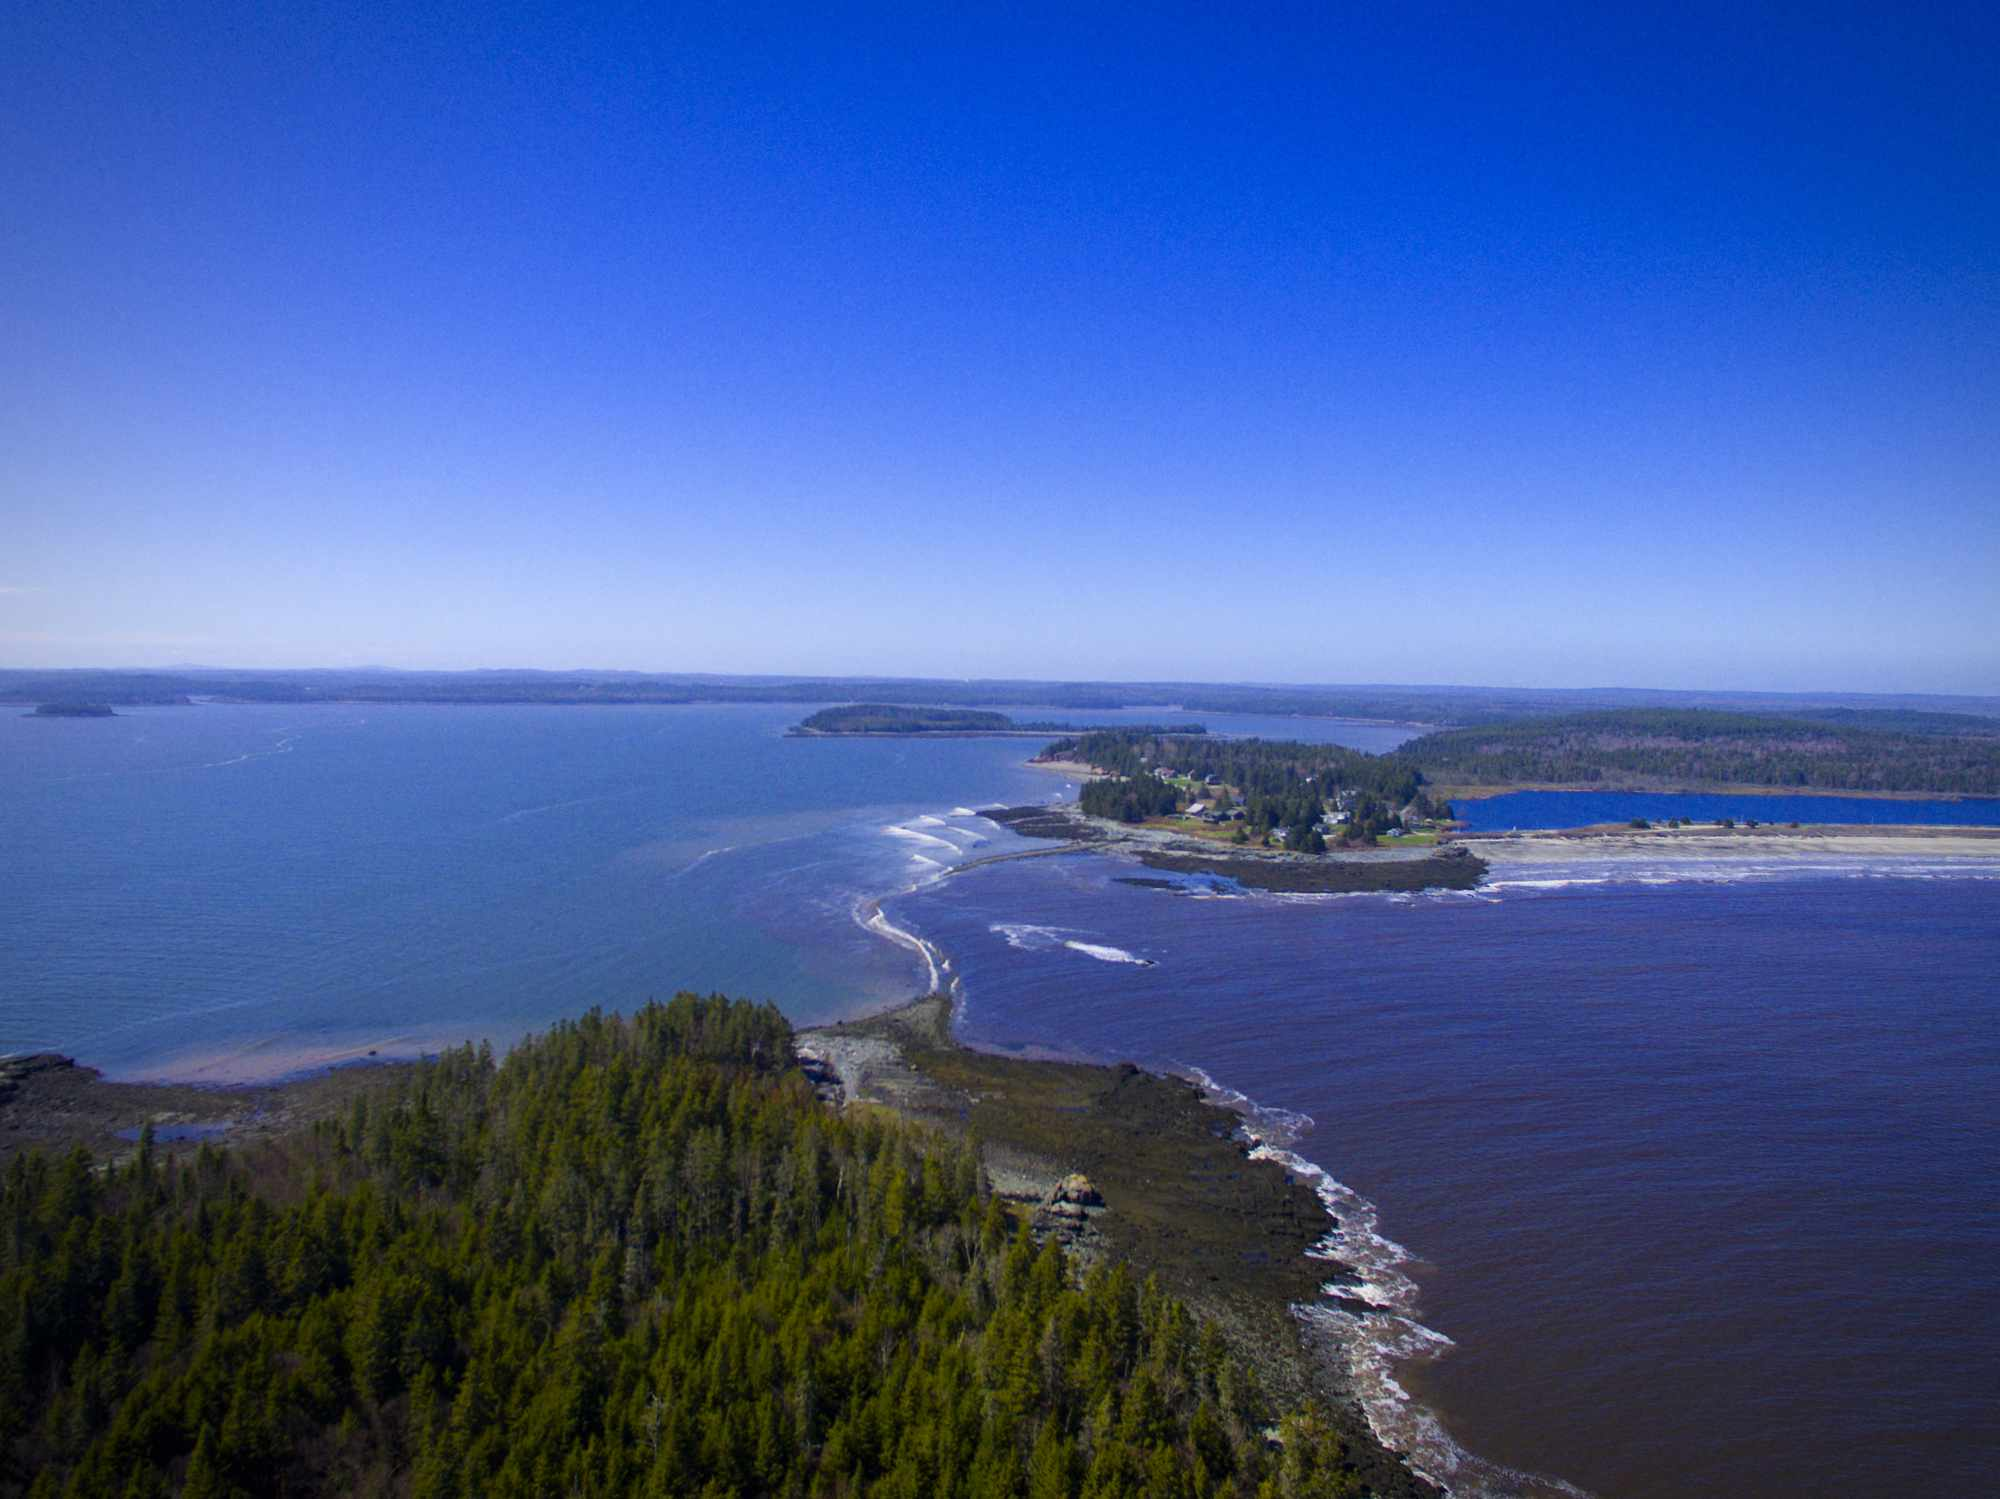 Aerial view of a clear blue sky and bright blue water of Roque Bluffs State Park and beach in Maine